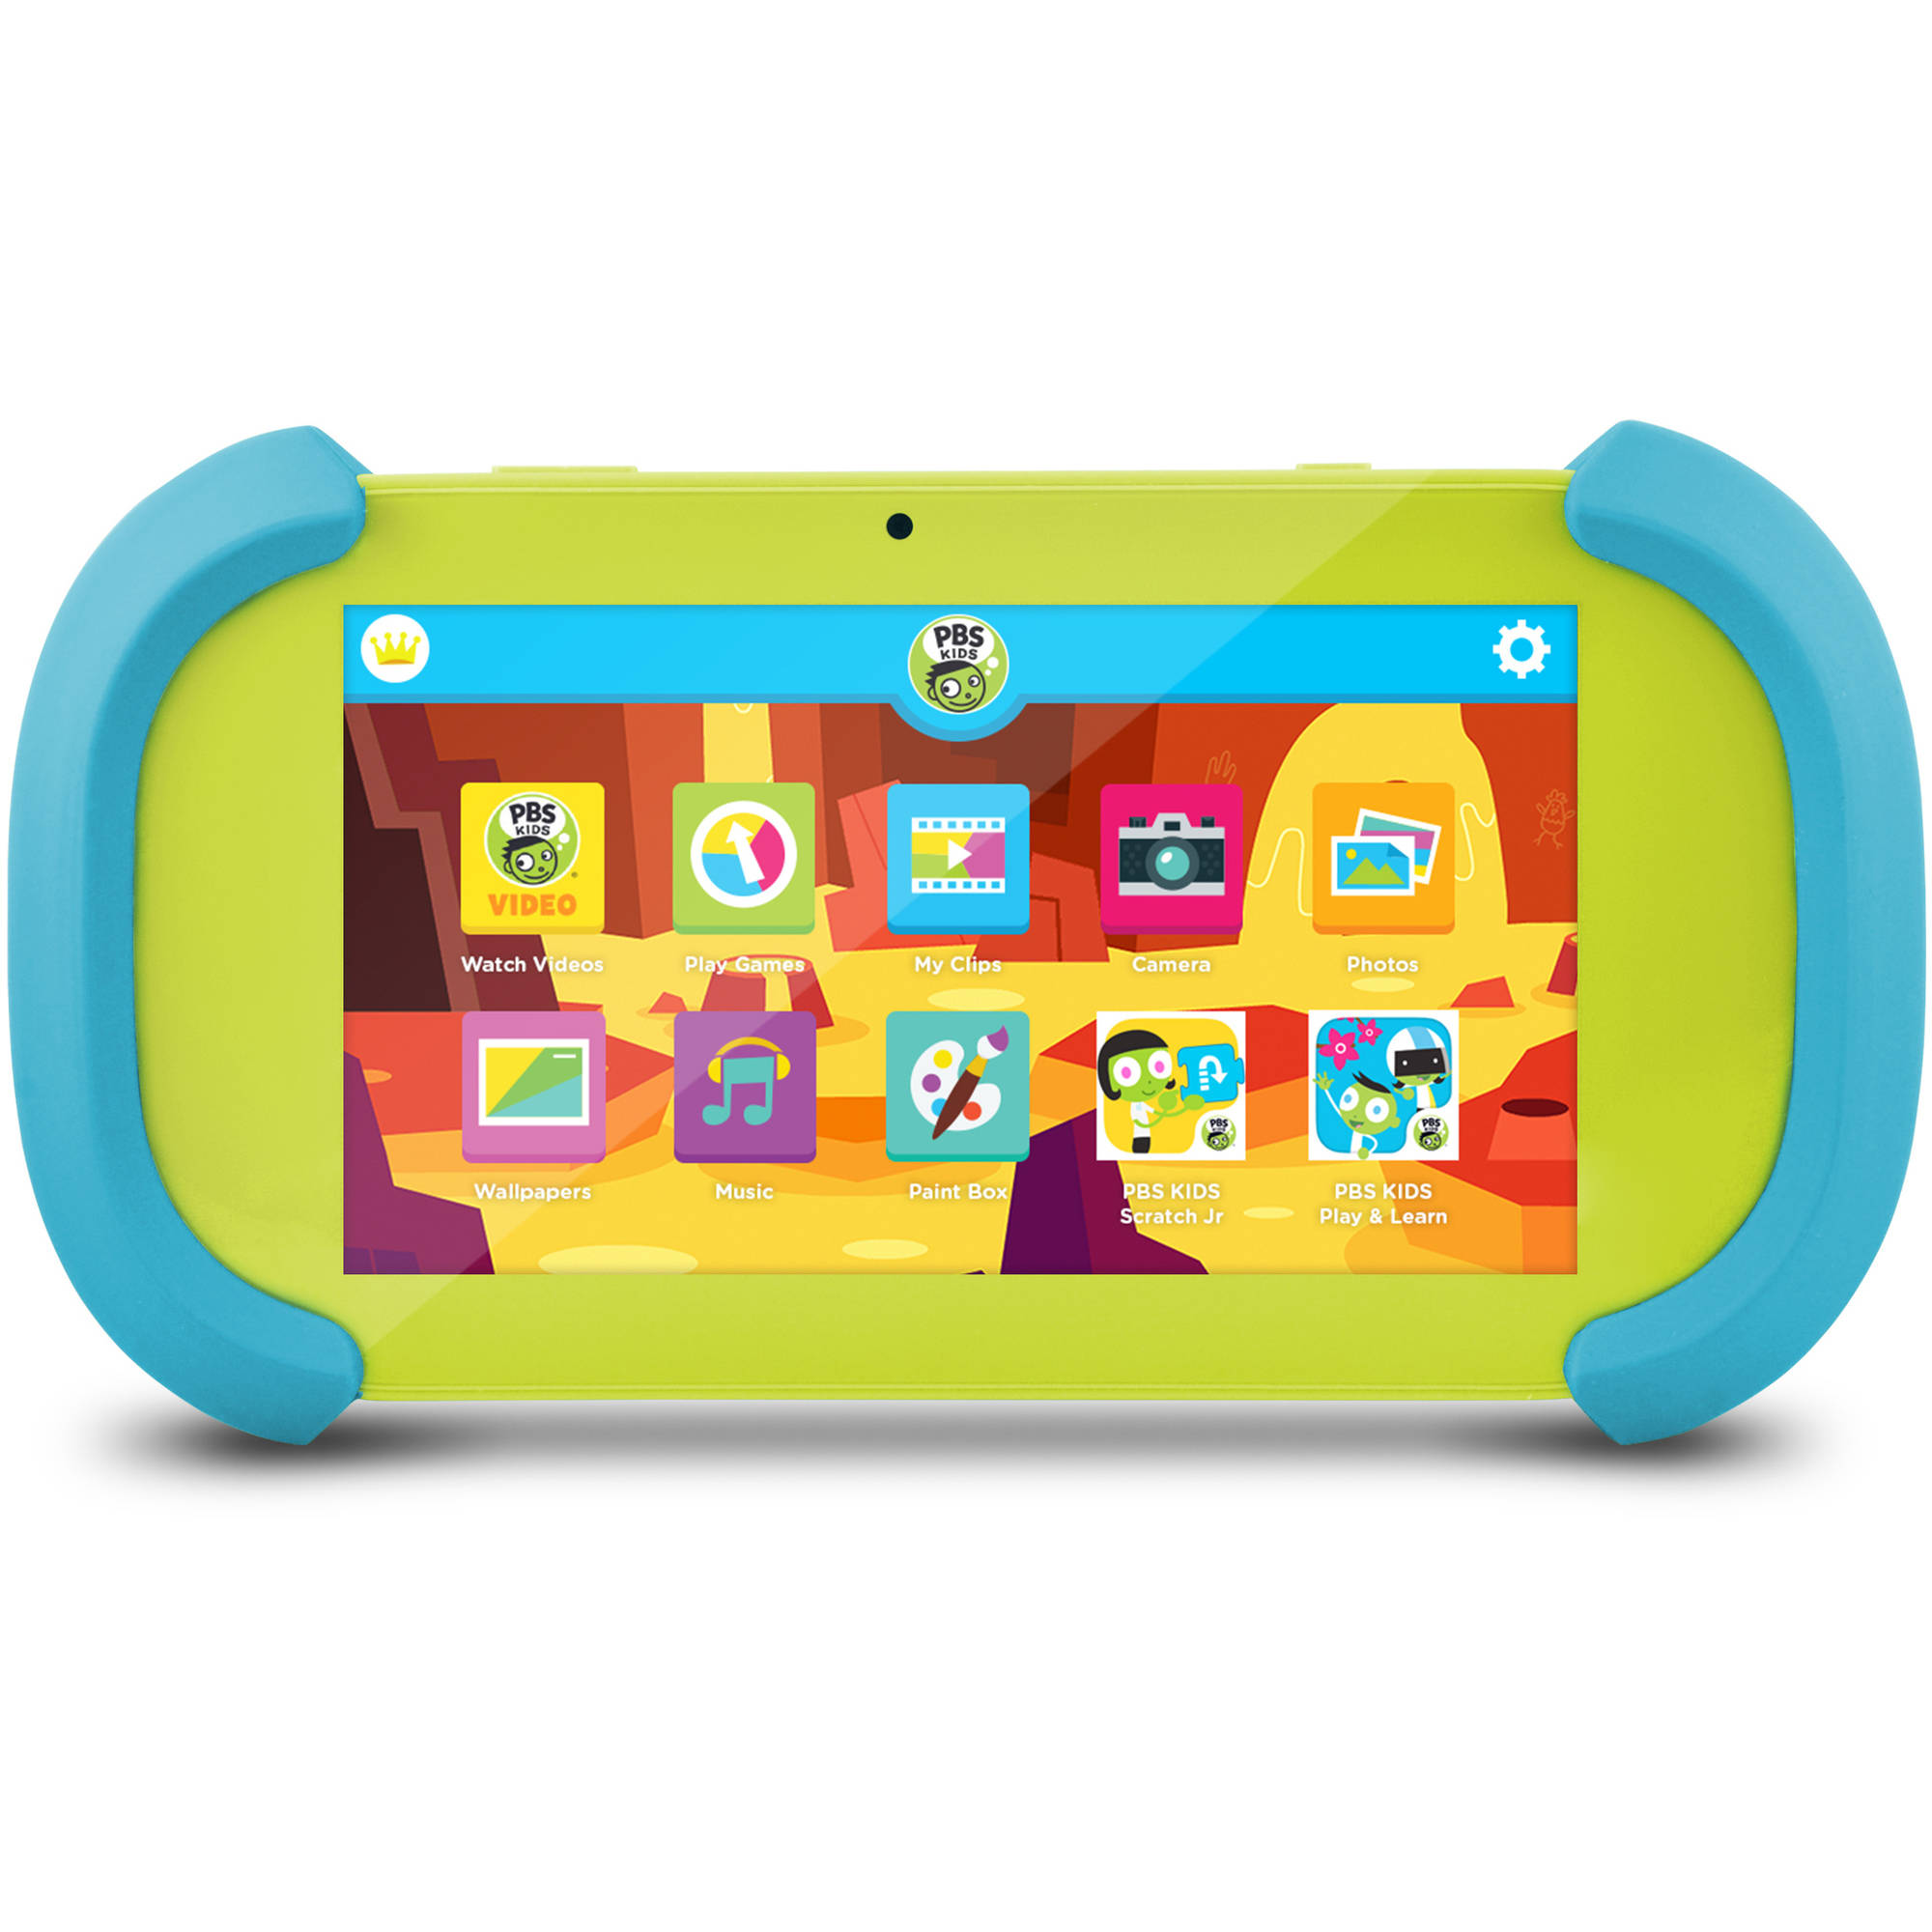 "PBS KIDS Playtime Pad 7"" 16GB Tablet Android 6.0 (Marshmallow) by PBS"